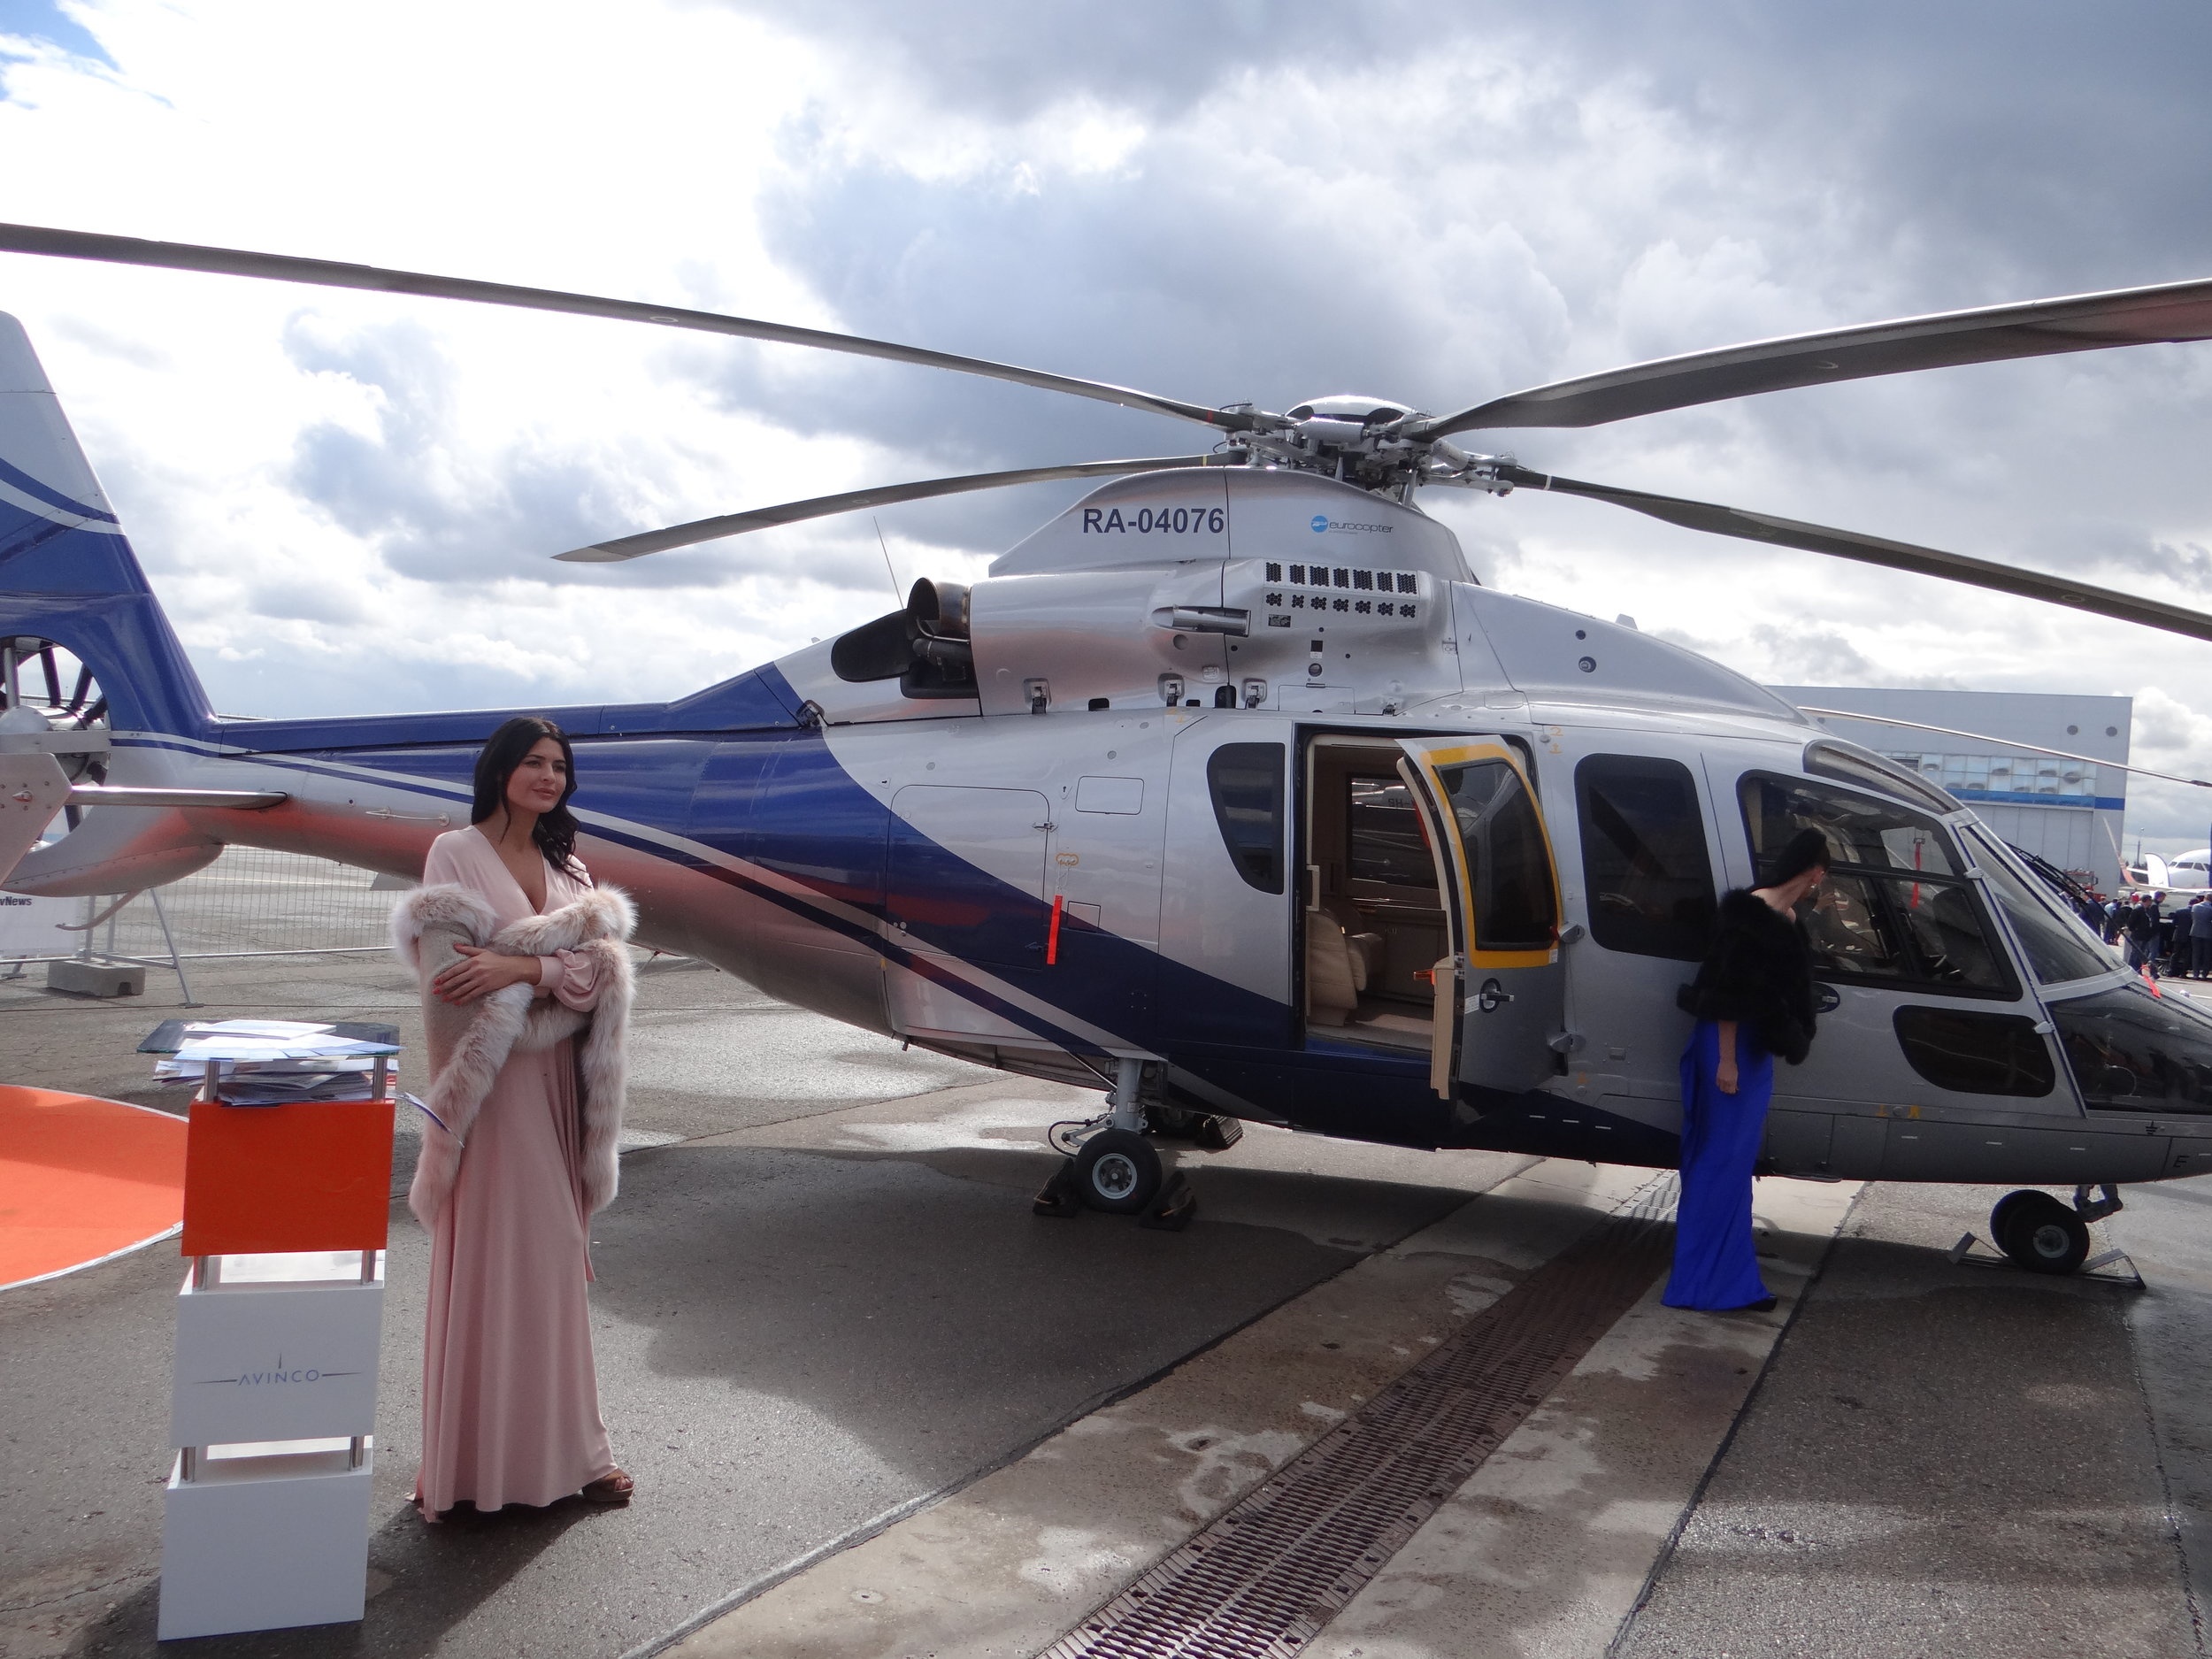 There were also helicopters at Jet Expo - with Airbus Helicopters showcasing their upmarket models (this one comes with golden seat-belt buckles!) with some local support